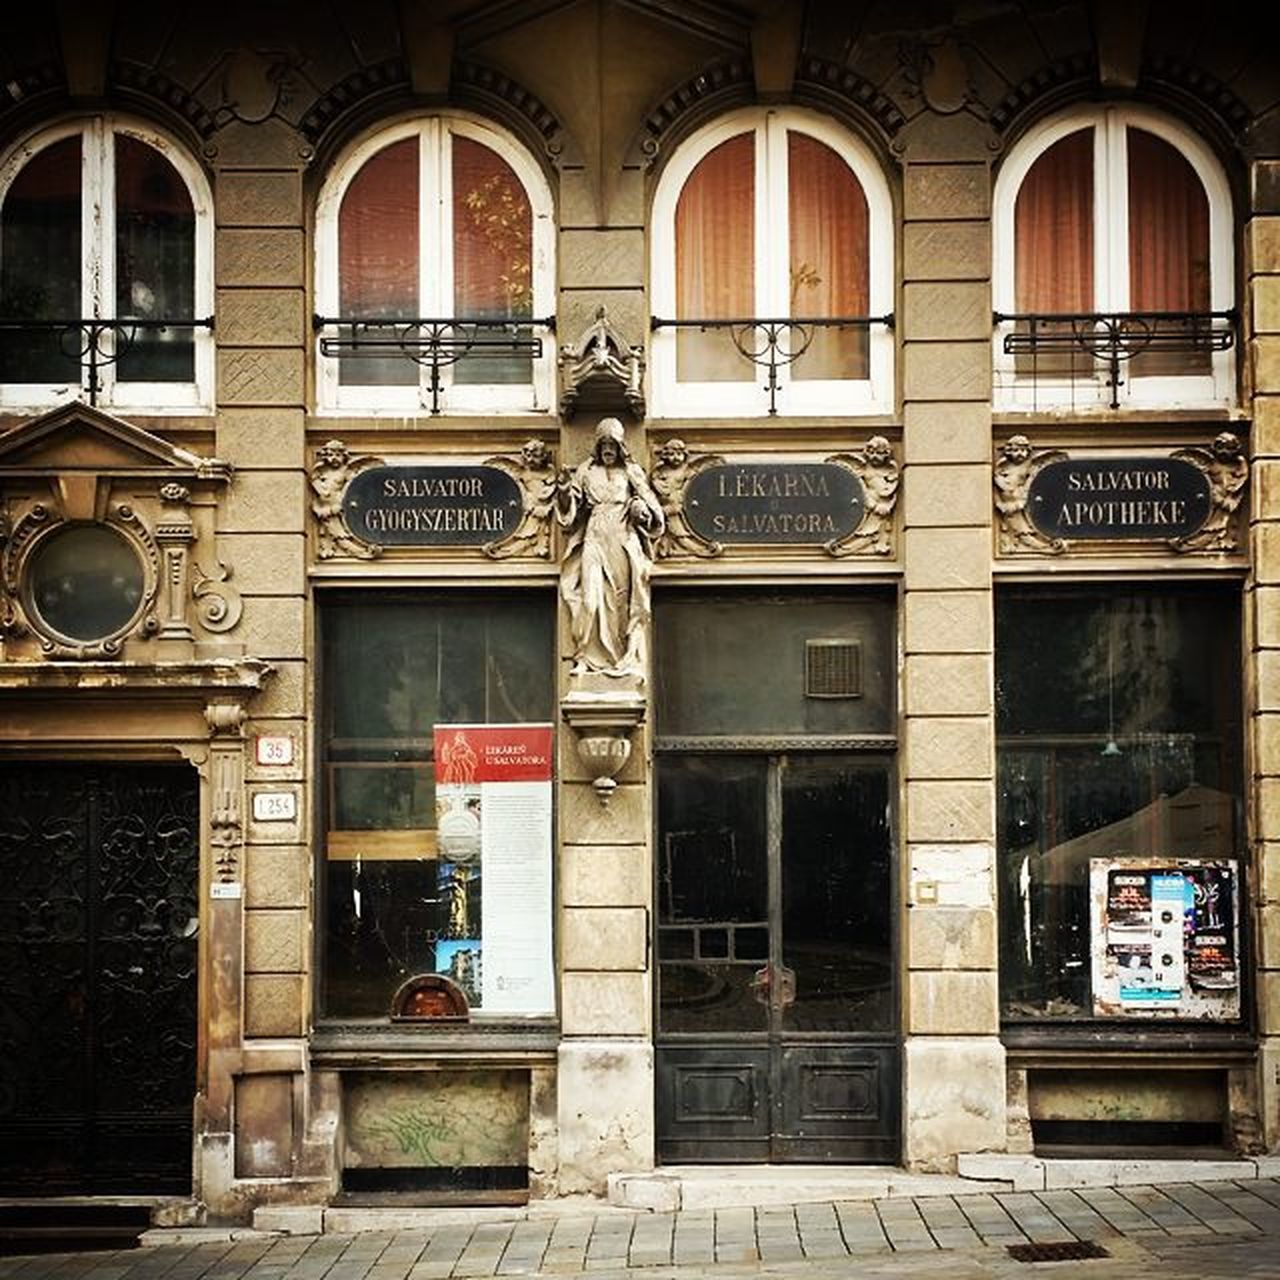 architecture, building exterior, built structure, window, day, outdoors, facade, no people, statue